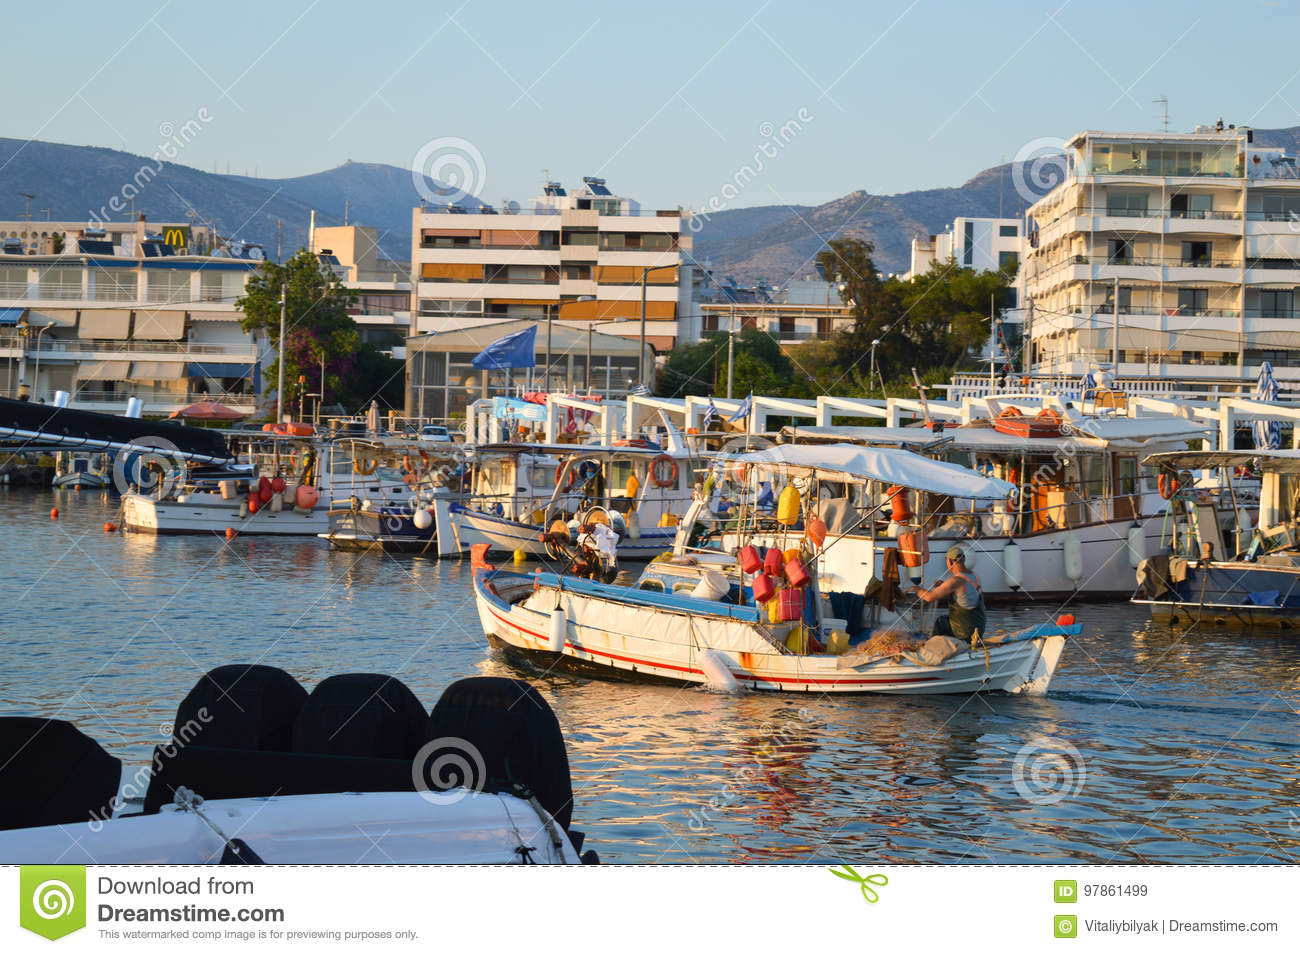 Fisherman coming back in Glyfada, Athens, Greece on June 14, 2017.